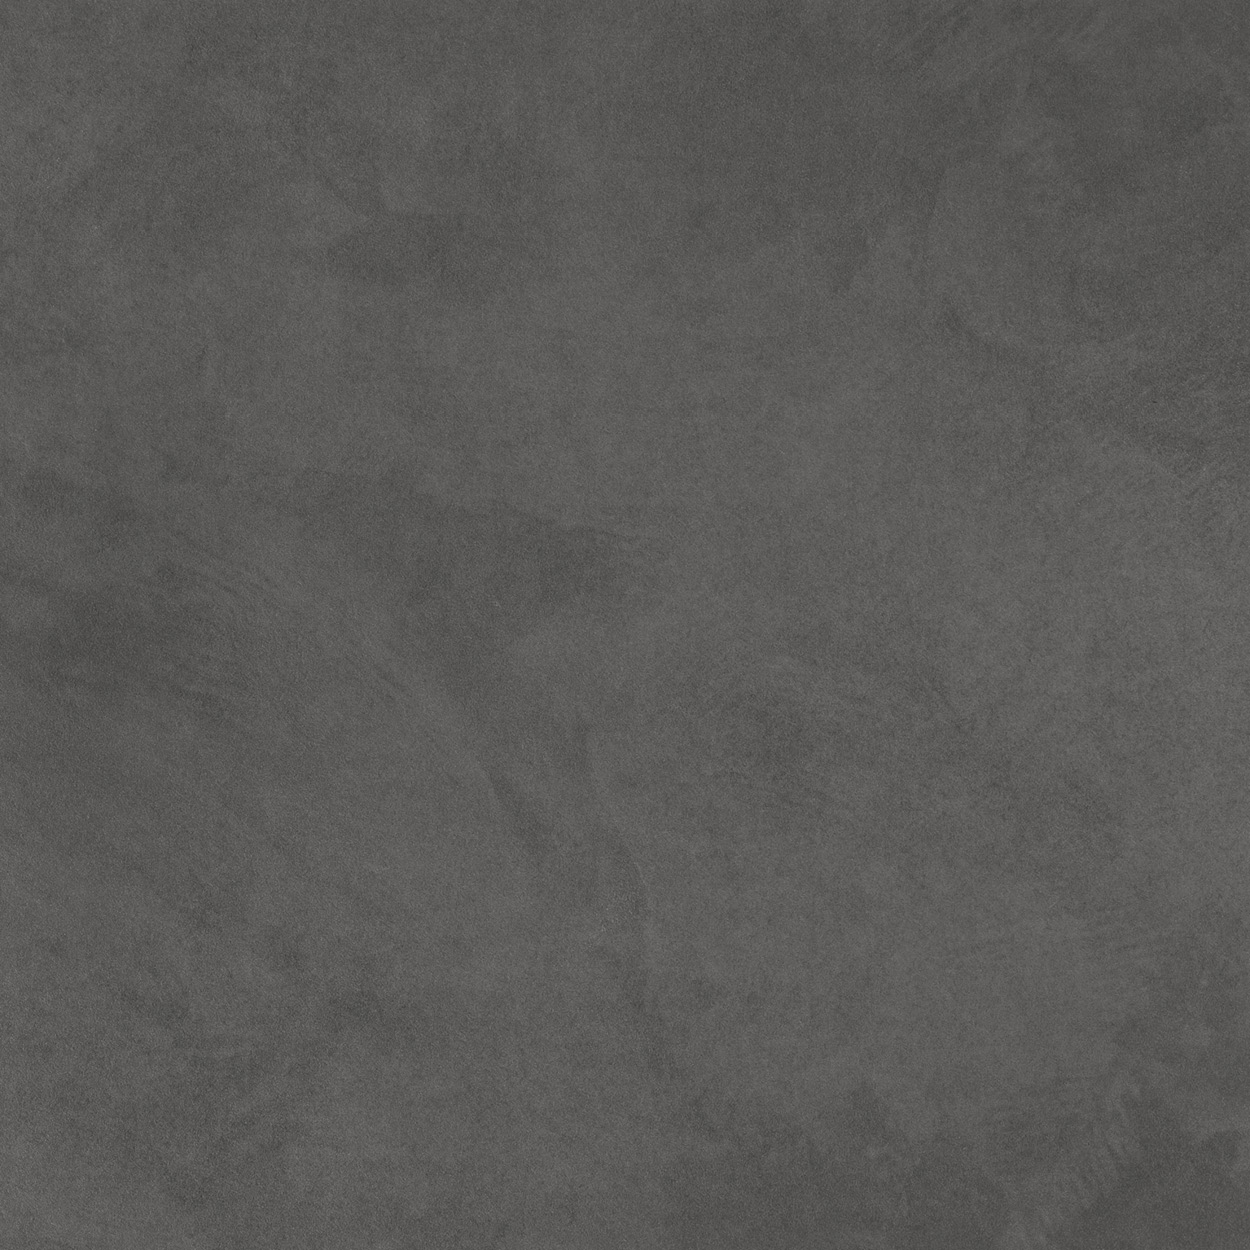 32 x 32 Seamless CL_03 Porcelain tile (SPECIAL ORDER ONLY)